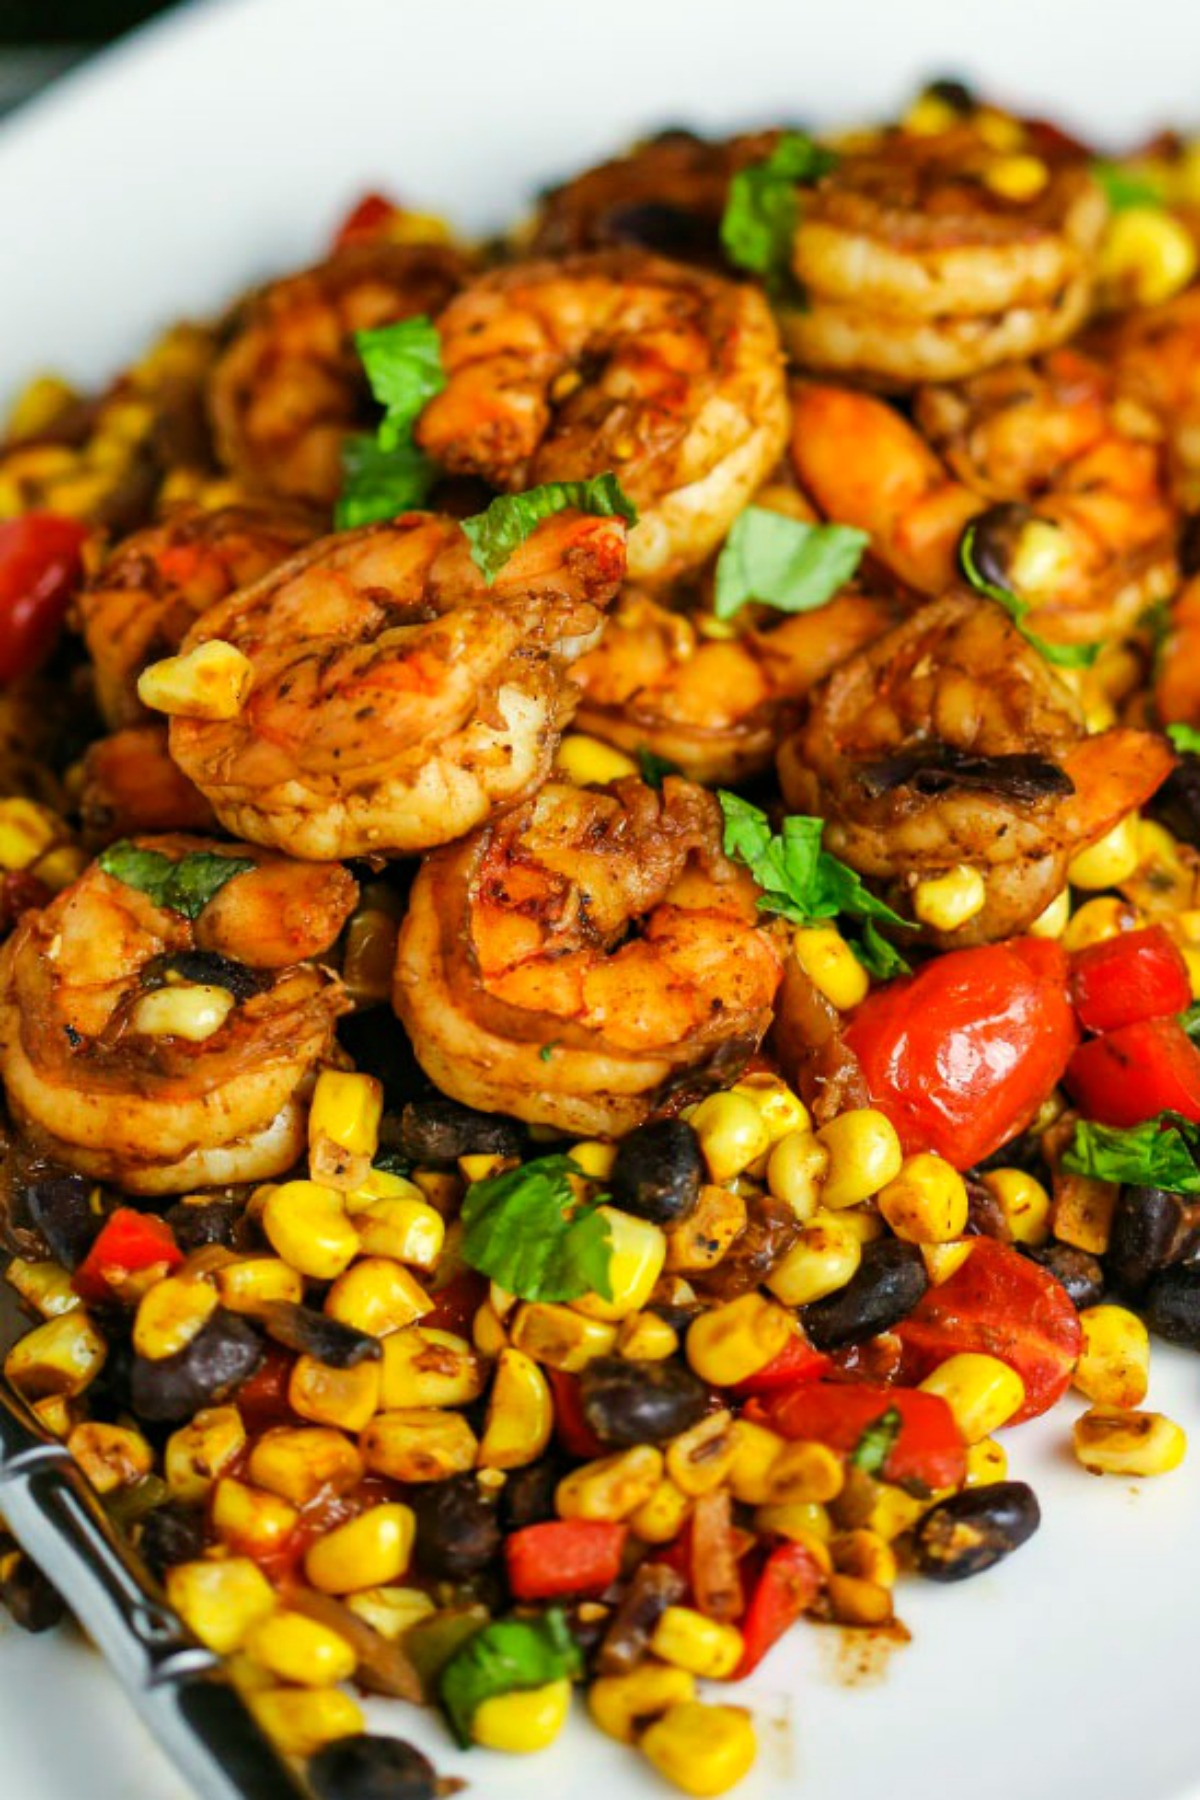 Southwest Shrimp Succotash made with fresh corn and black beans is a fresh, healthy, and easy dinner you can make in one skillet!